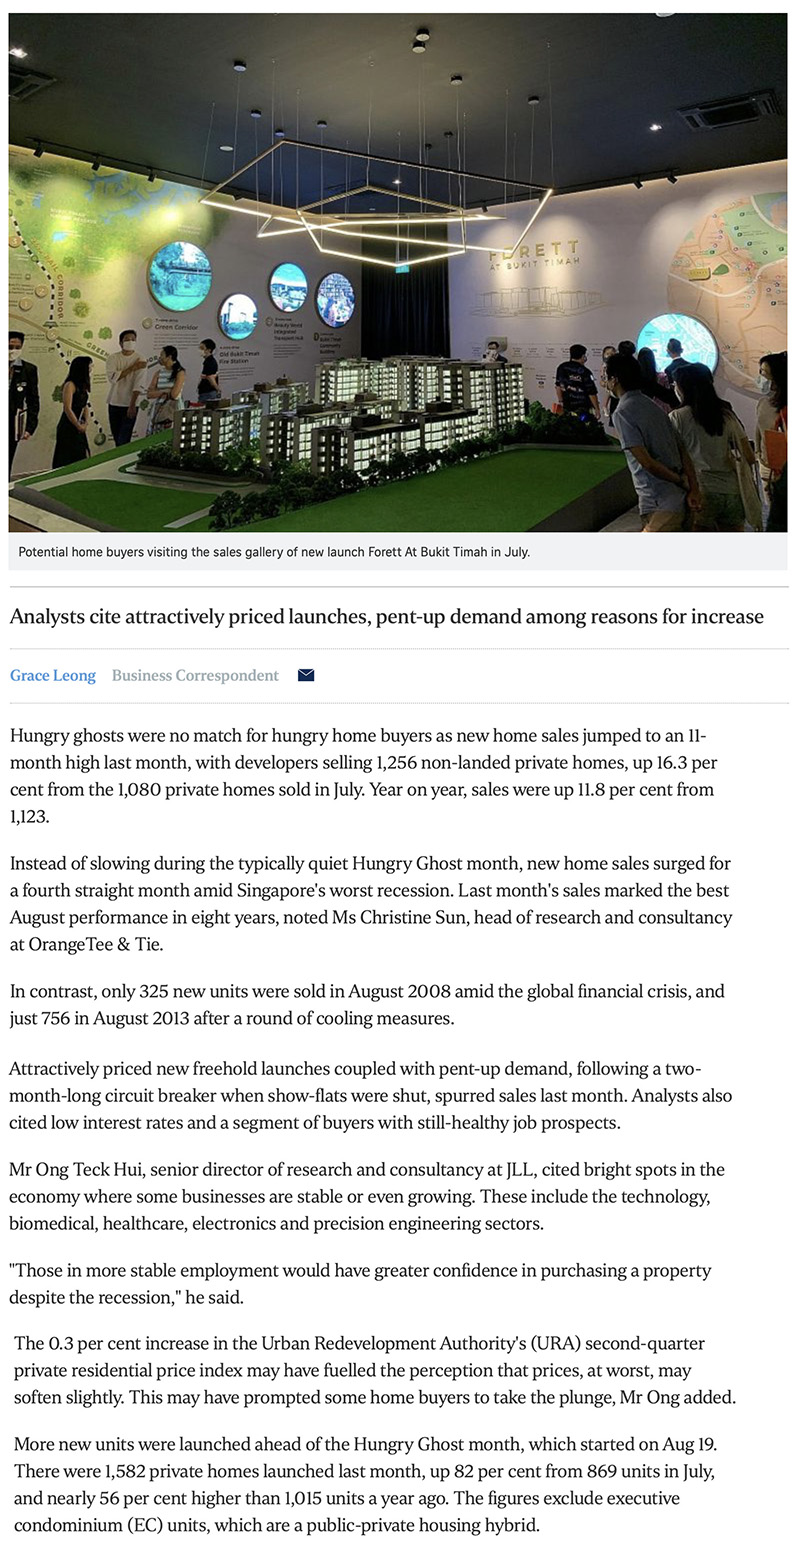 Myra - New home sales surge to 11-month high in August 1